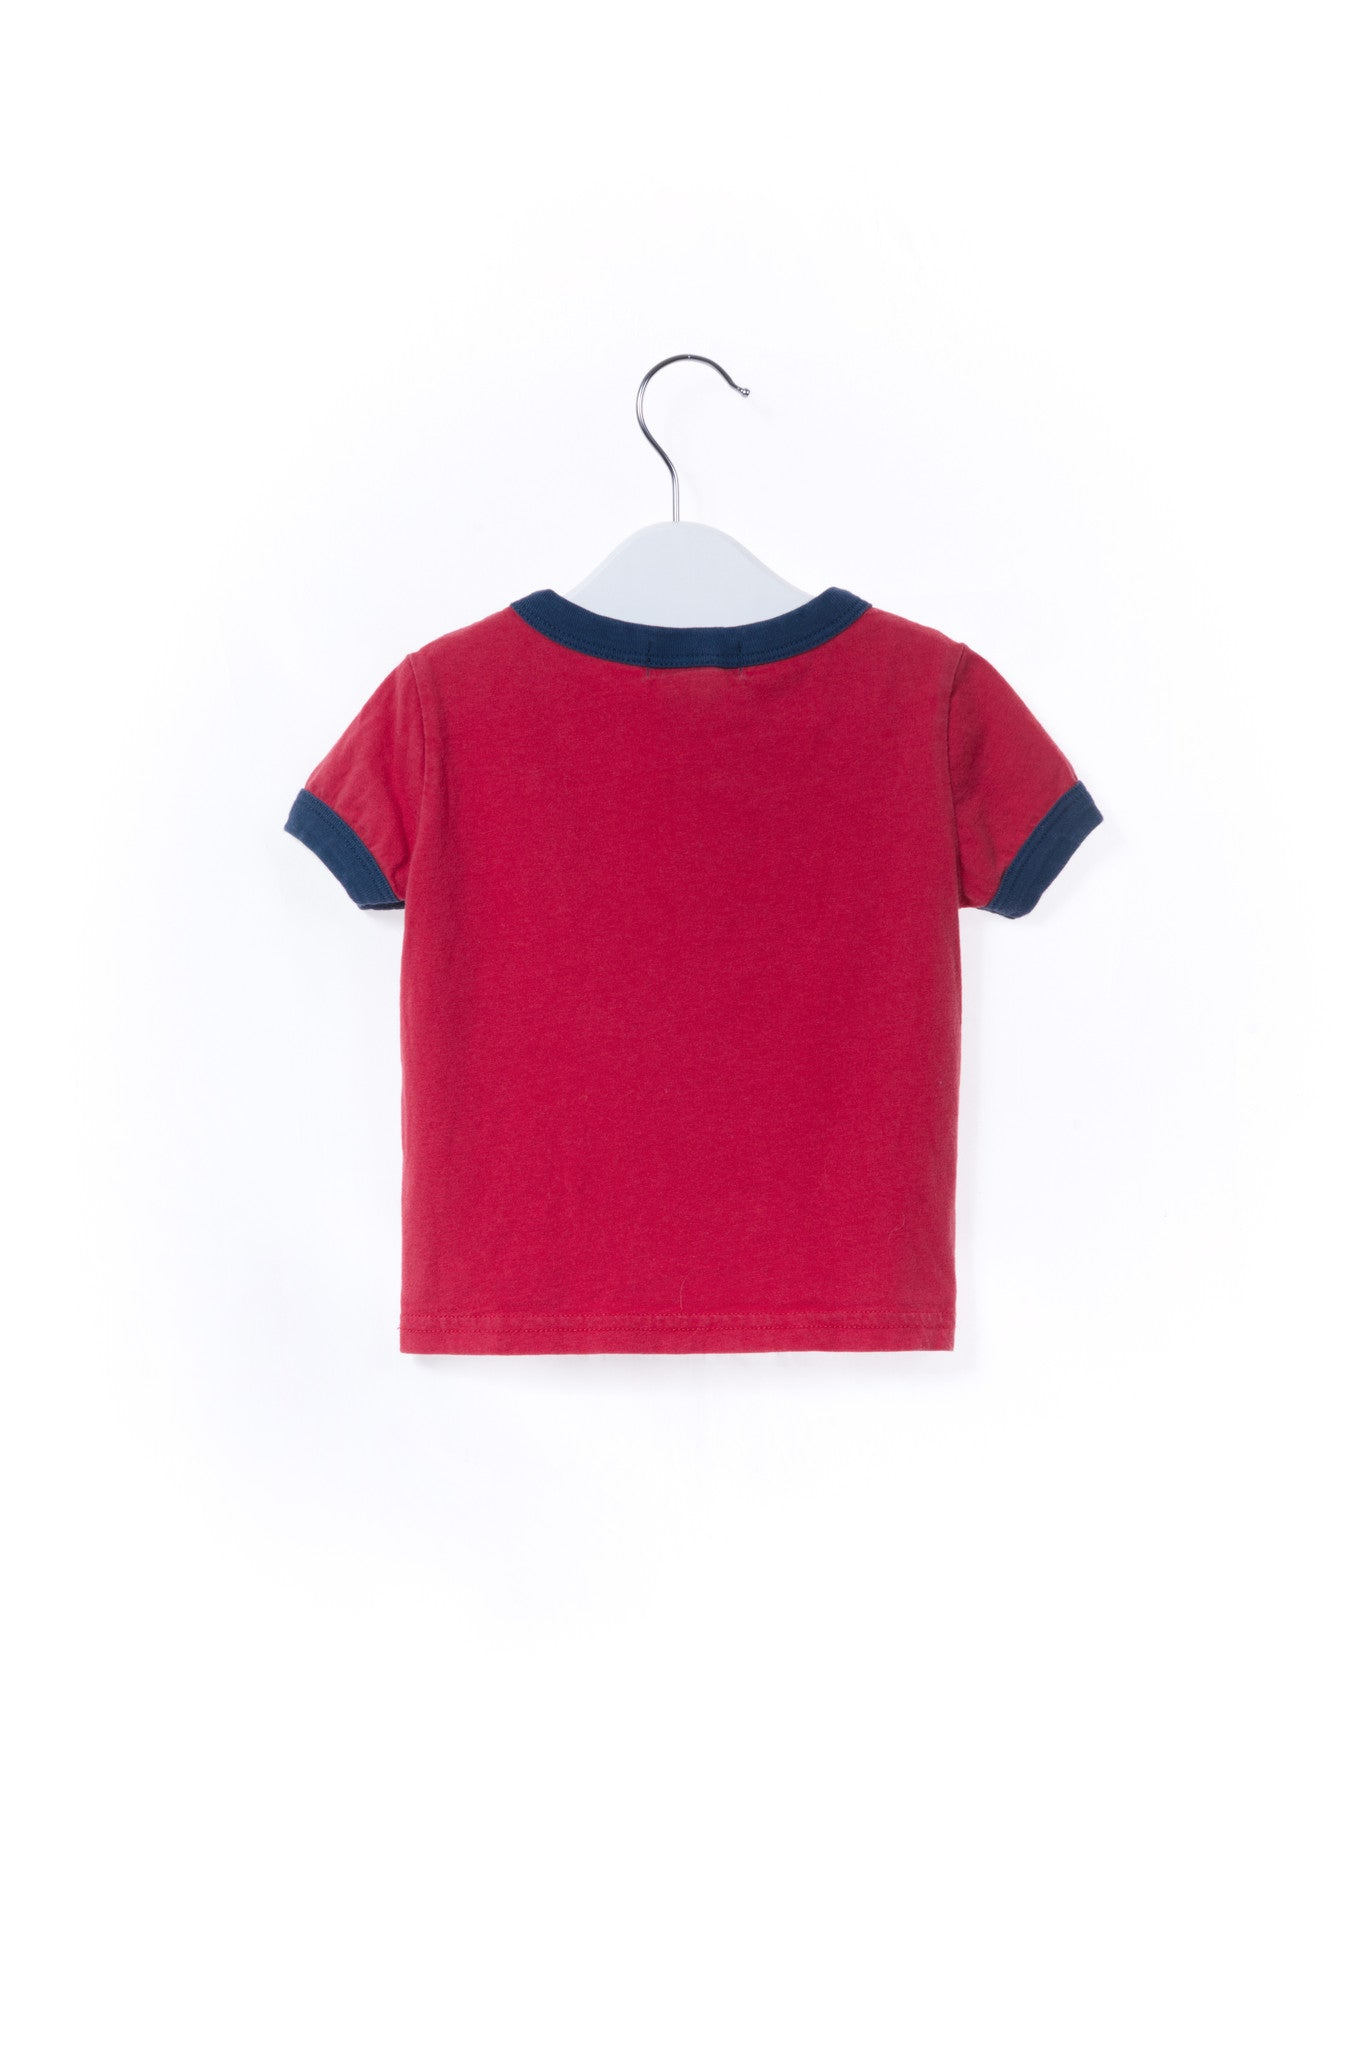 10001095 Polo Ralph Lauren Baby~T-Shirt 6-9M at Retykle